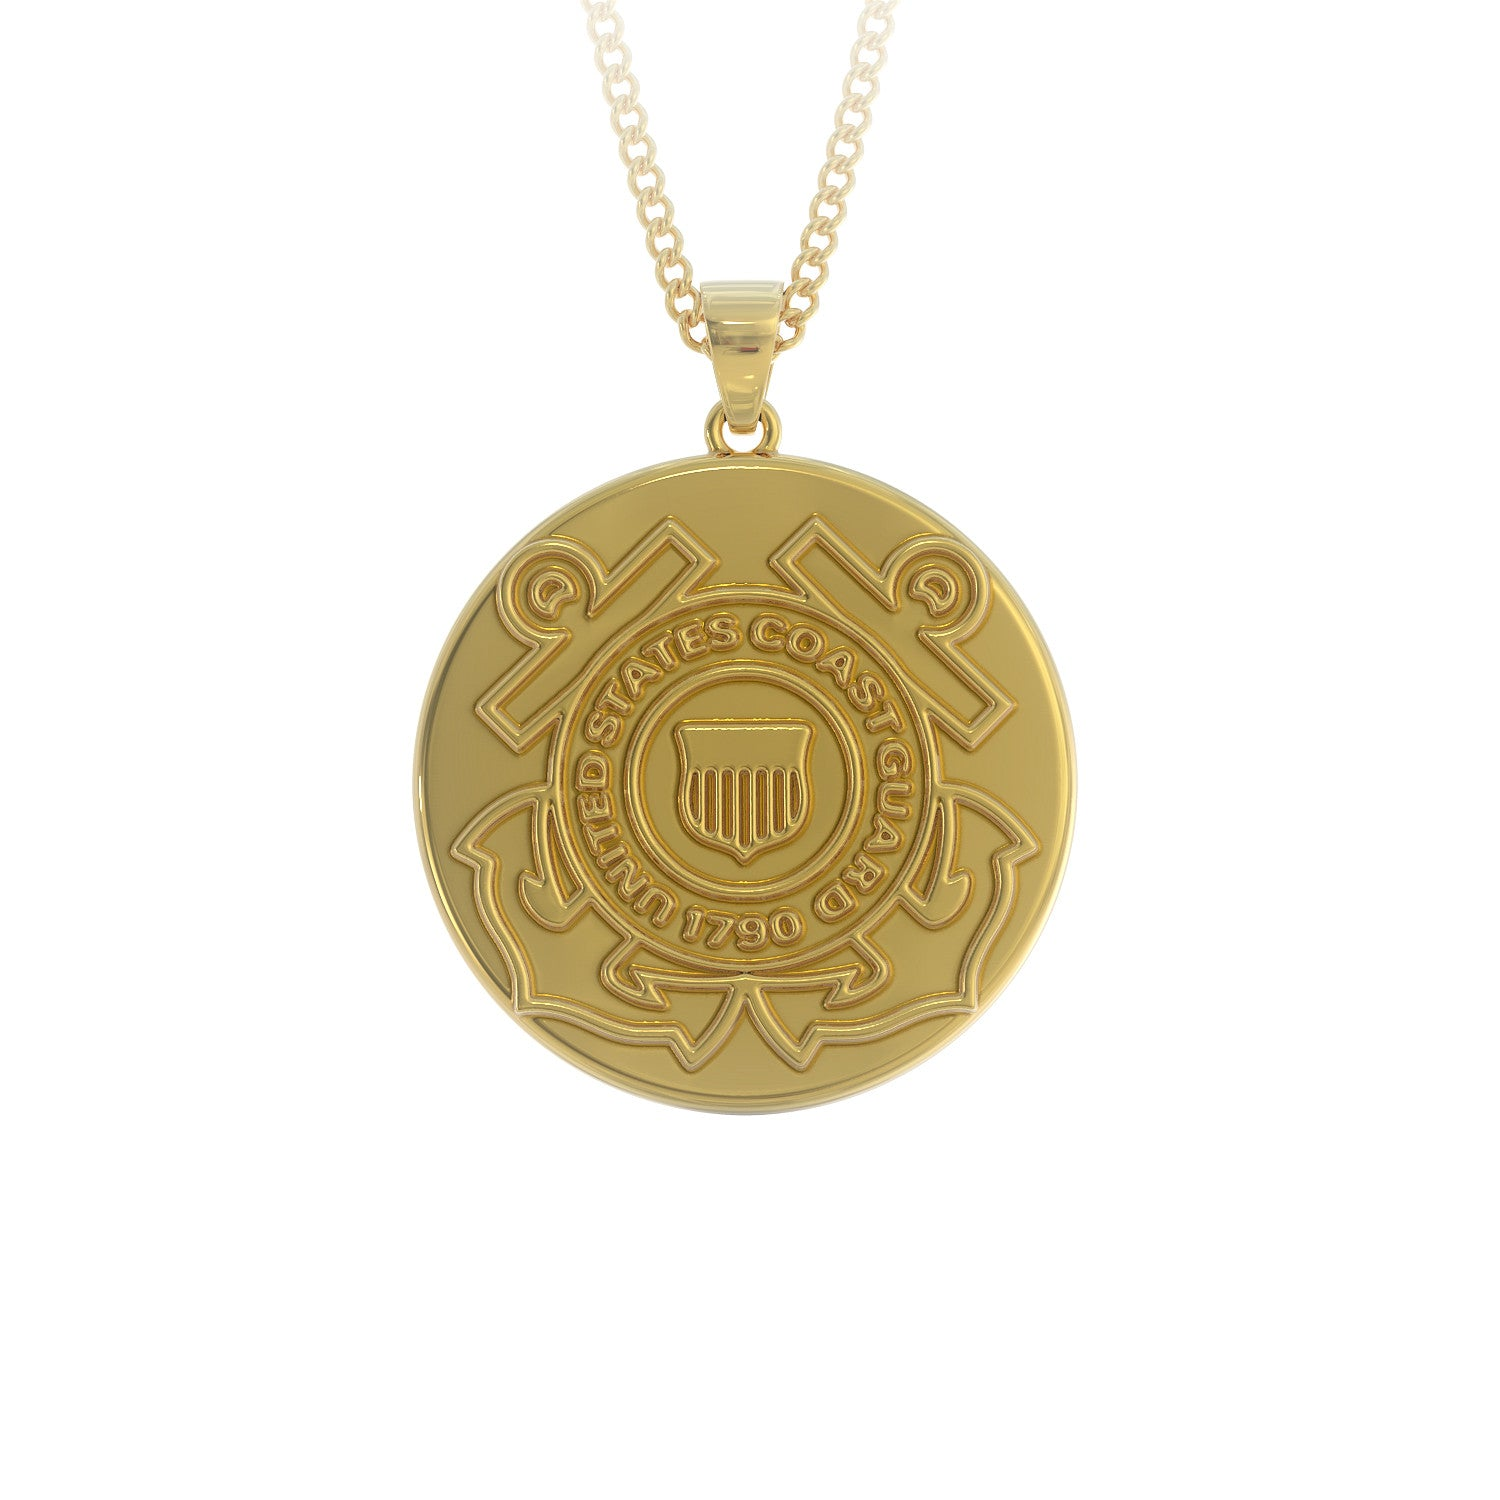 Us Coast Guard Necklace